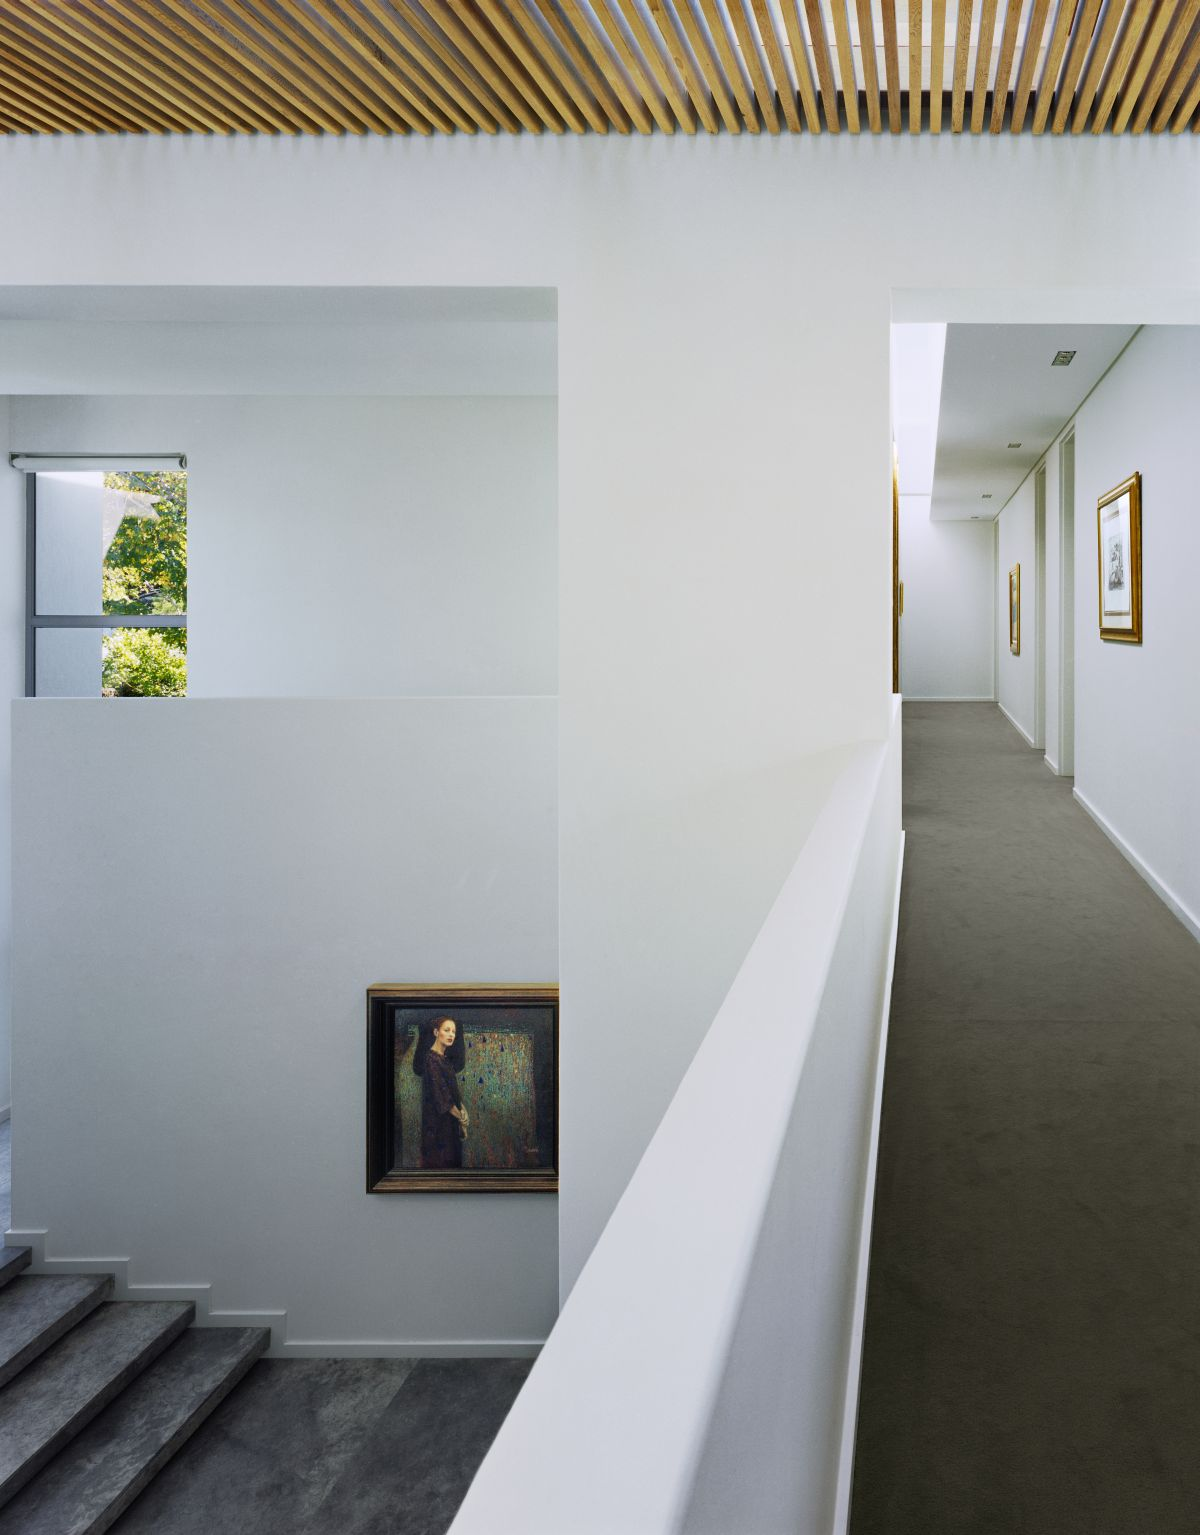 A bridge-like corridor links all the bedrooms and bathrooms housed on the upper floor